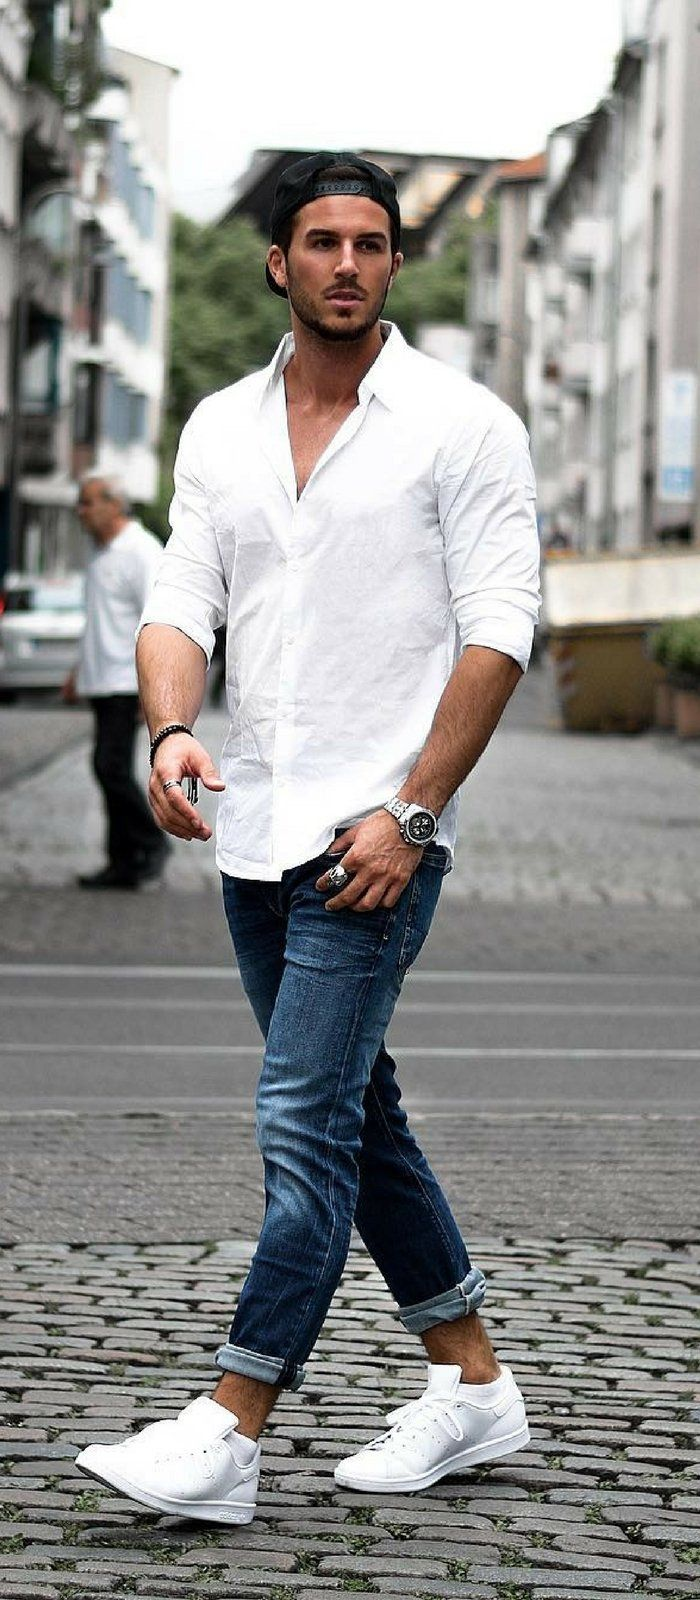 13 Coolest Casual Street Styles For Men Casual street